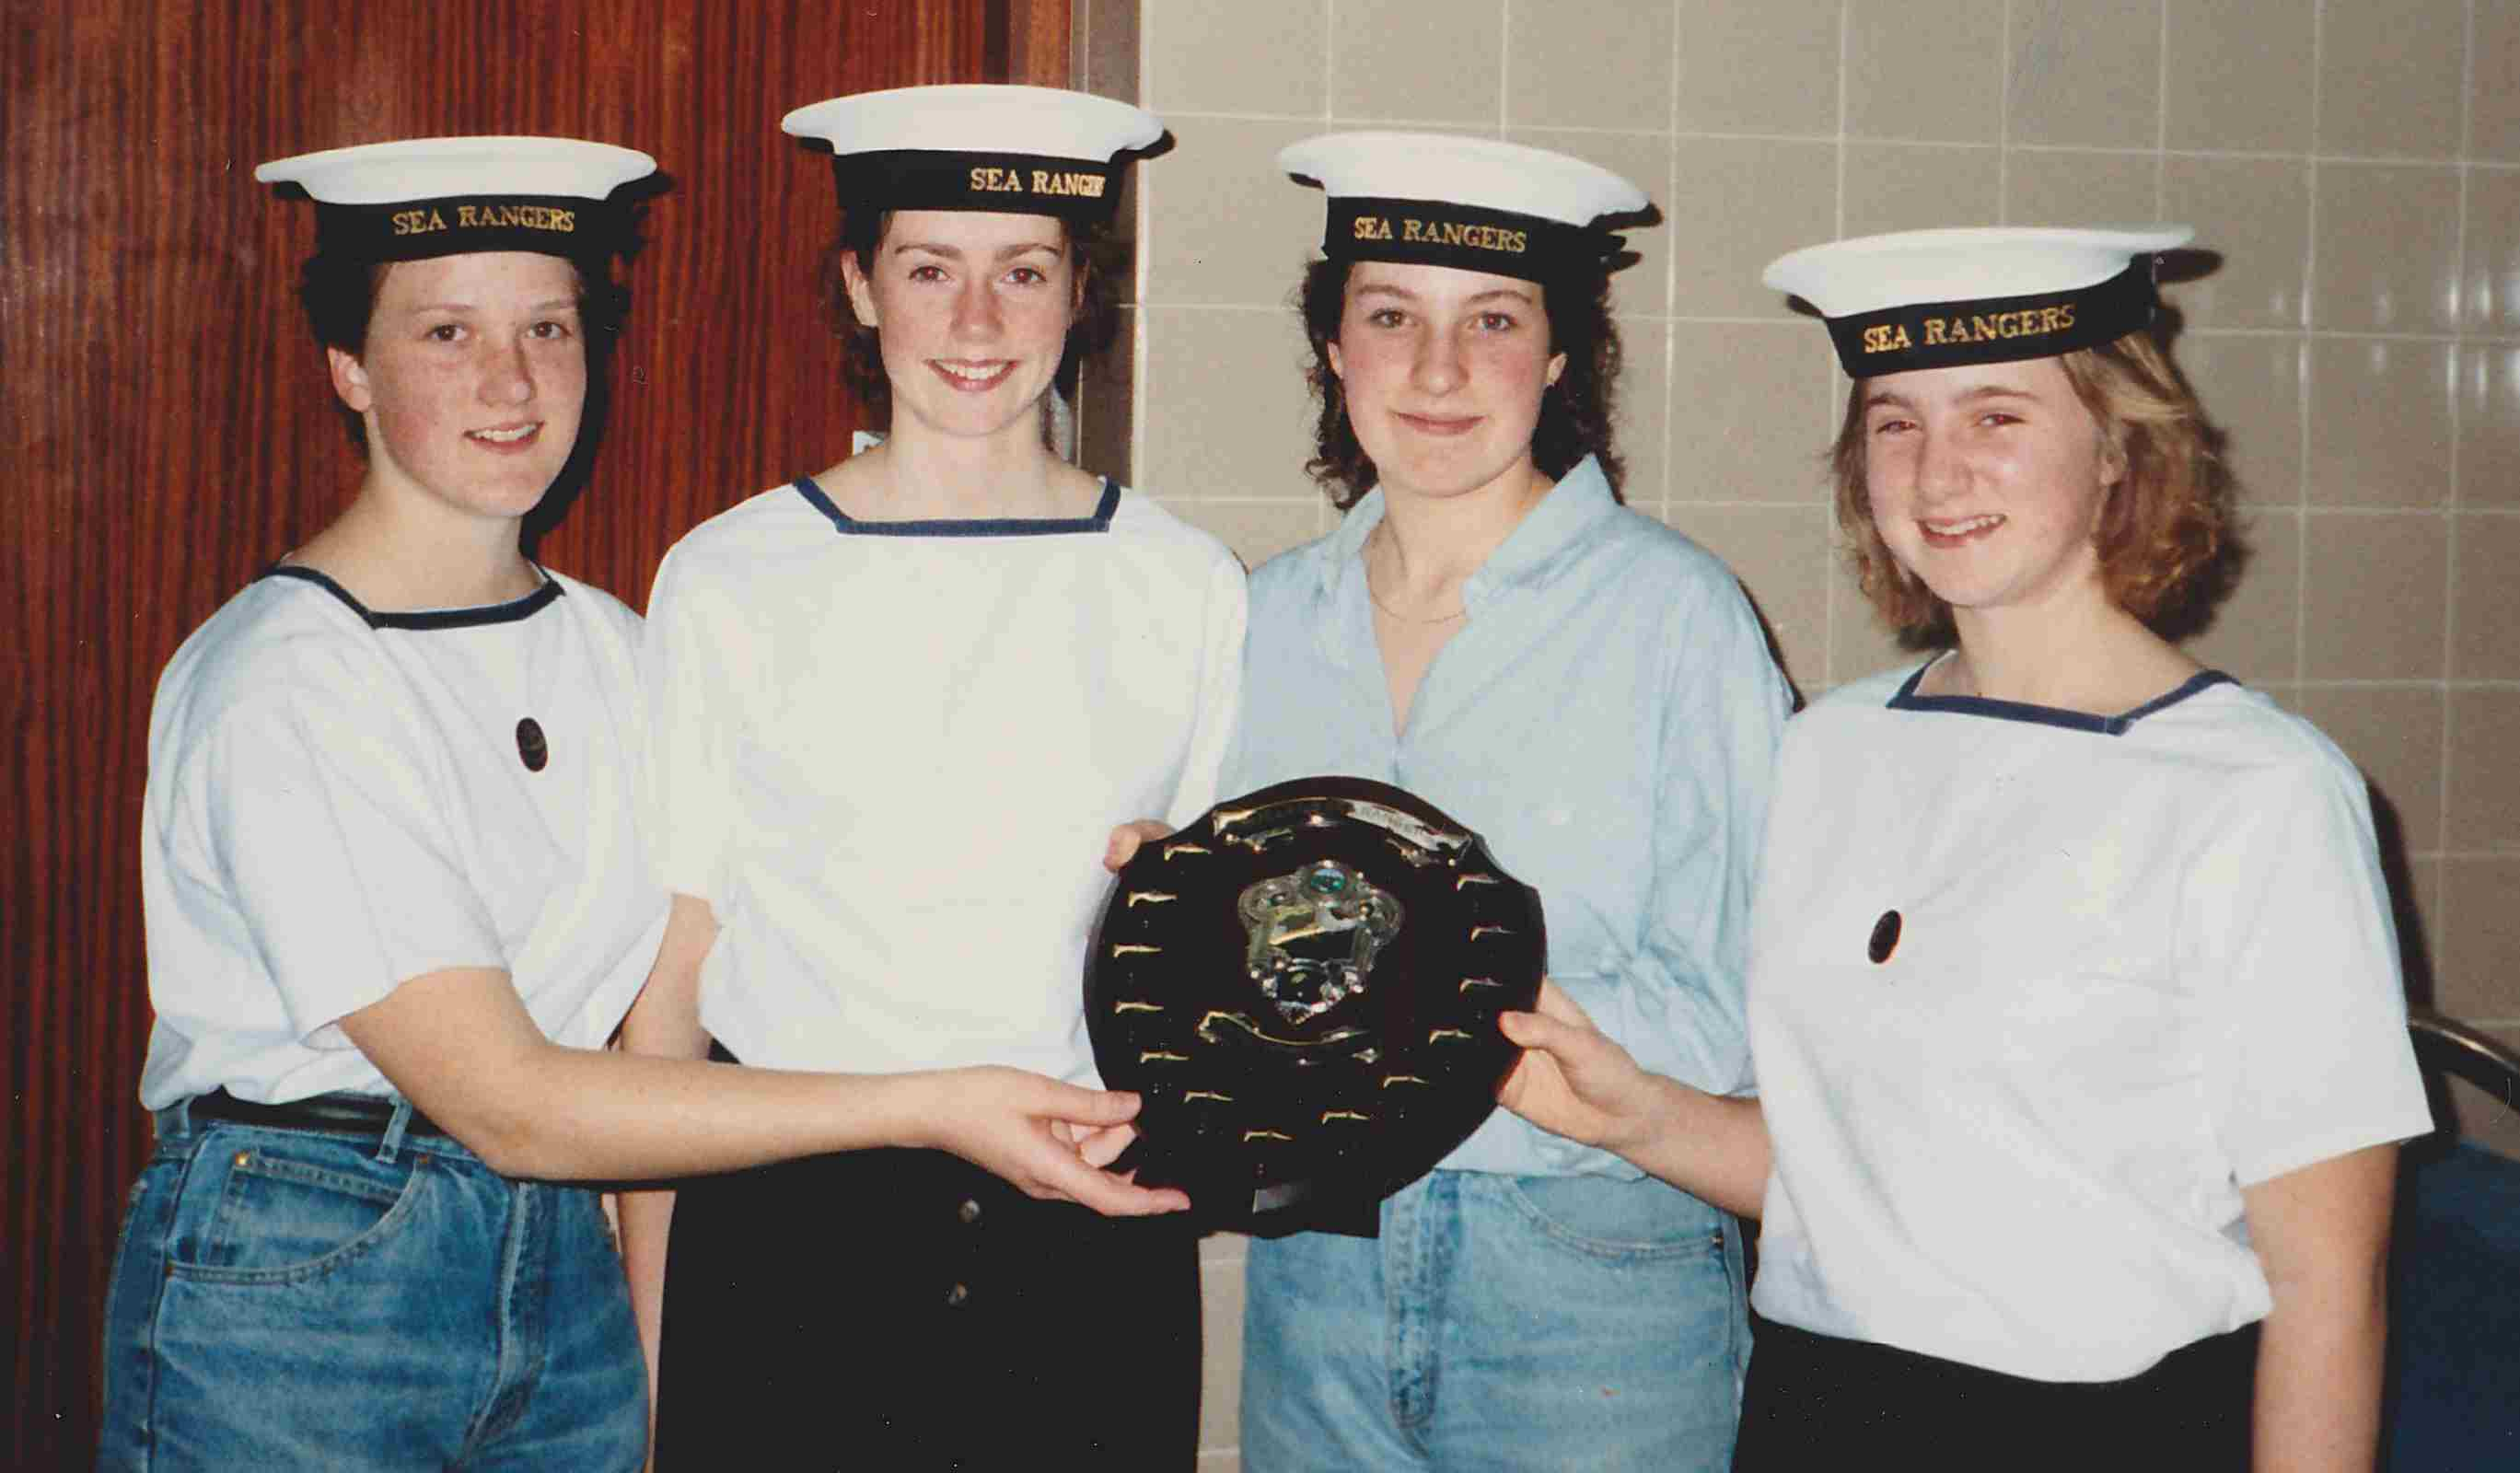 1989 Sea Ranger Swimming Gala - Winning Team with Anita on the left